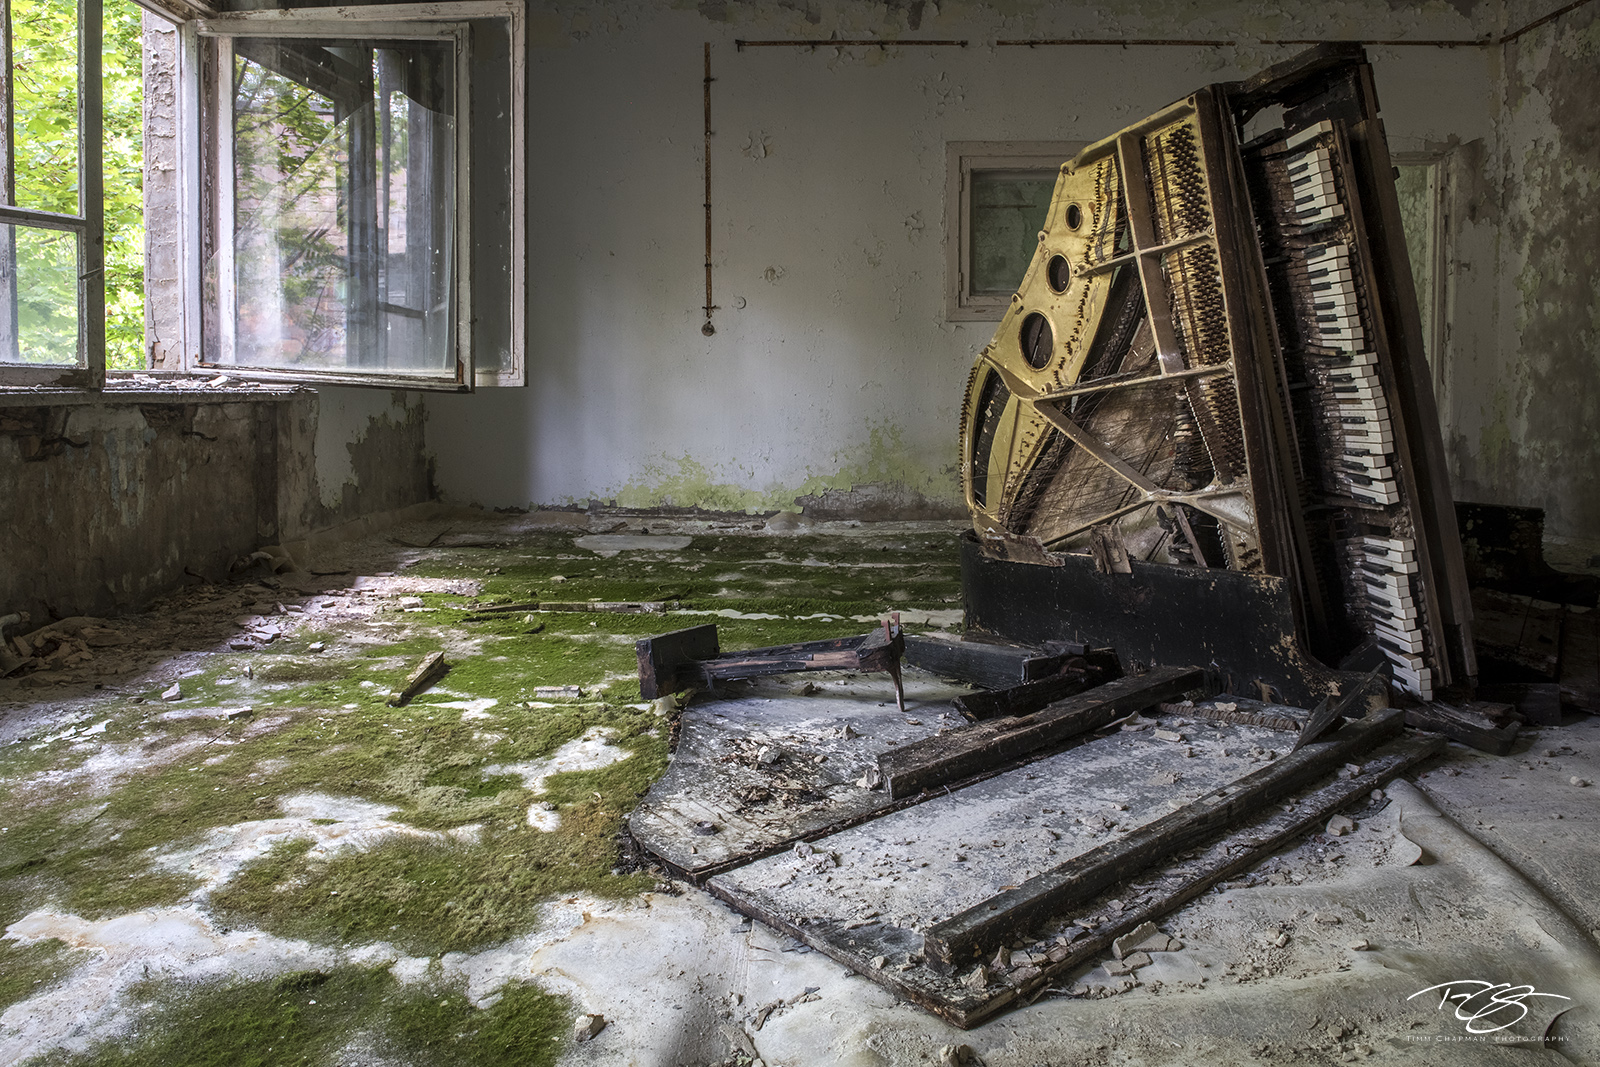 chernobyl, chornobyl, pripyat, exclusion zone, abandoned, forgotten, wasteland, radioactive, decay, peeling paint, moss, reclamation, green, wood, piano, grand piano, tipped over, keys, on edge, mold,, photo